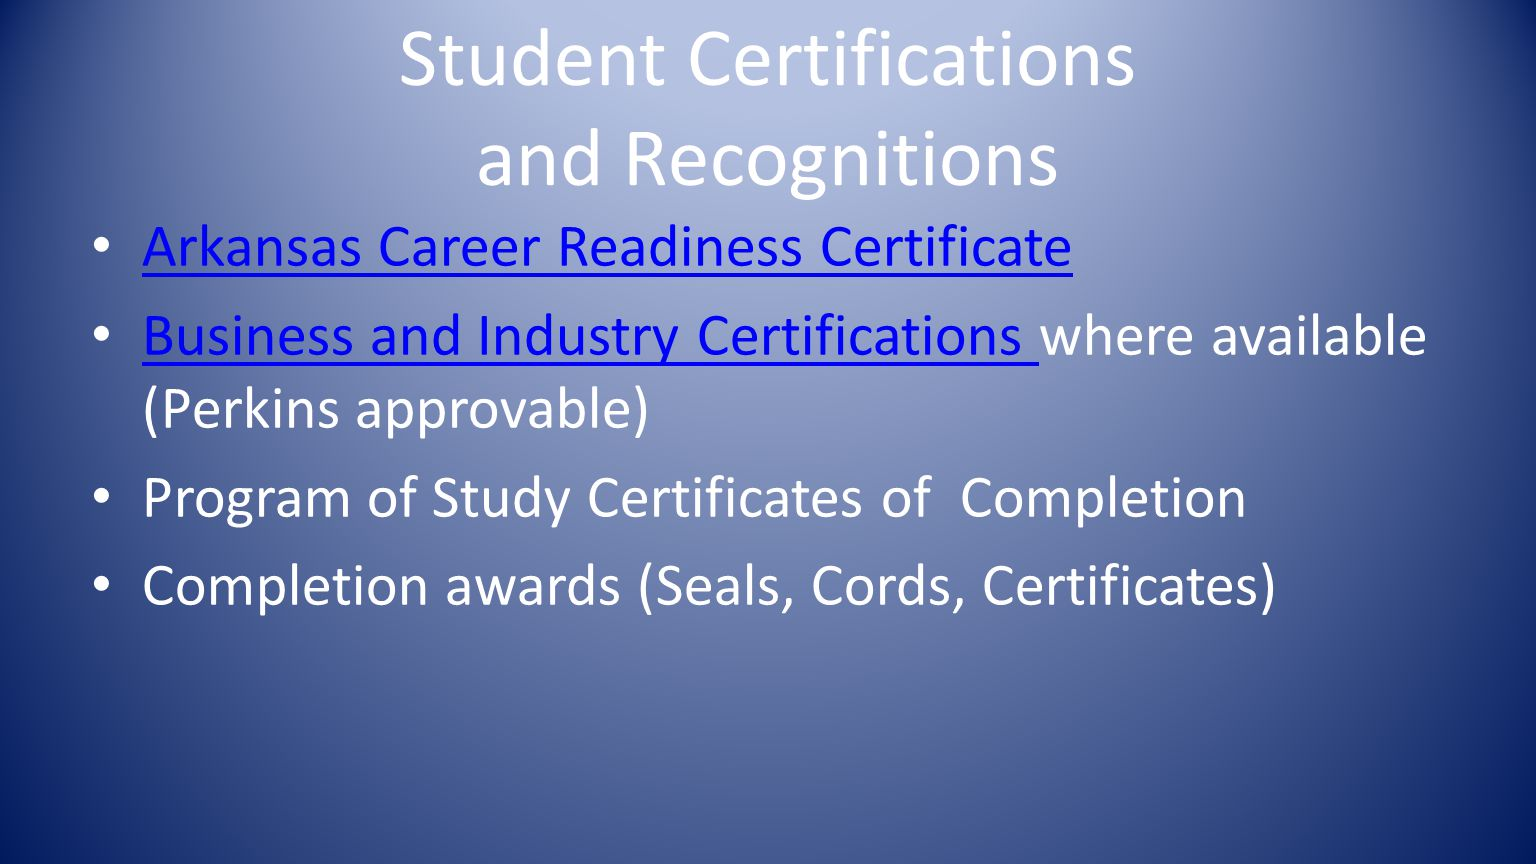 Student Certifications and Recognitions Arkansas Career Readiness Certificate Business and Industry Certifications where available (Perkins approvable) Business and Industry Certifications Program of Study Certificates of Completion Completion awards (Seals, Cords, Certificates)